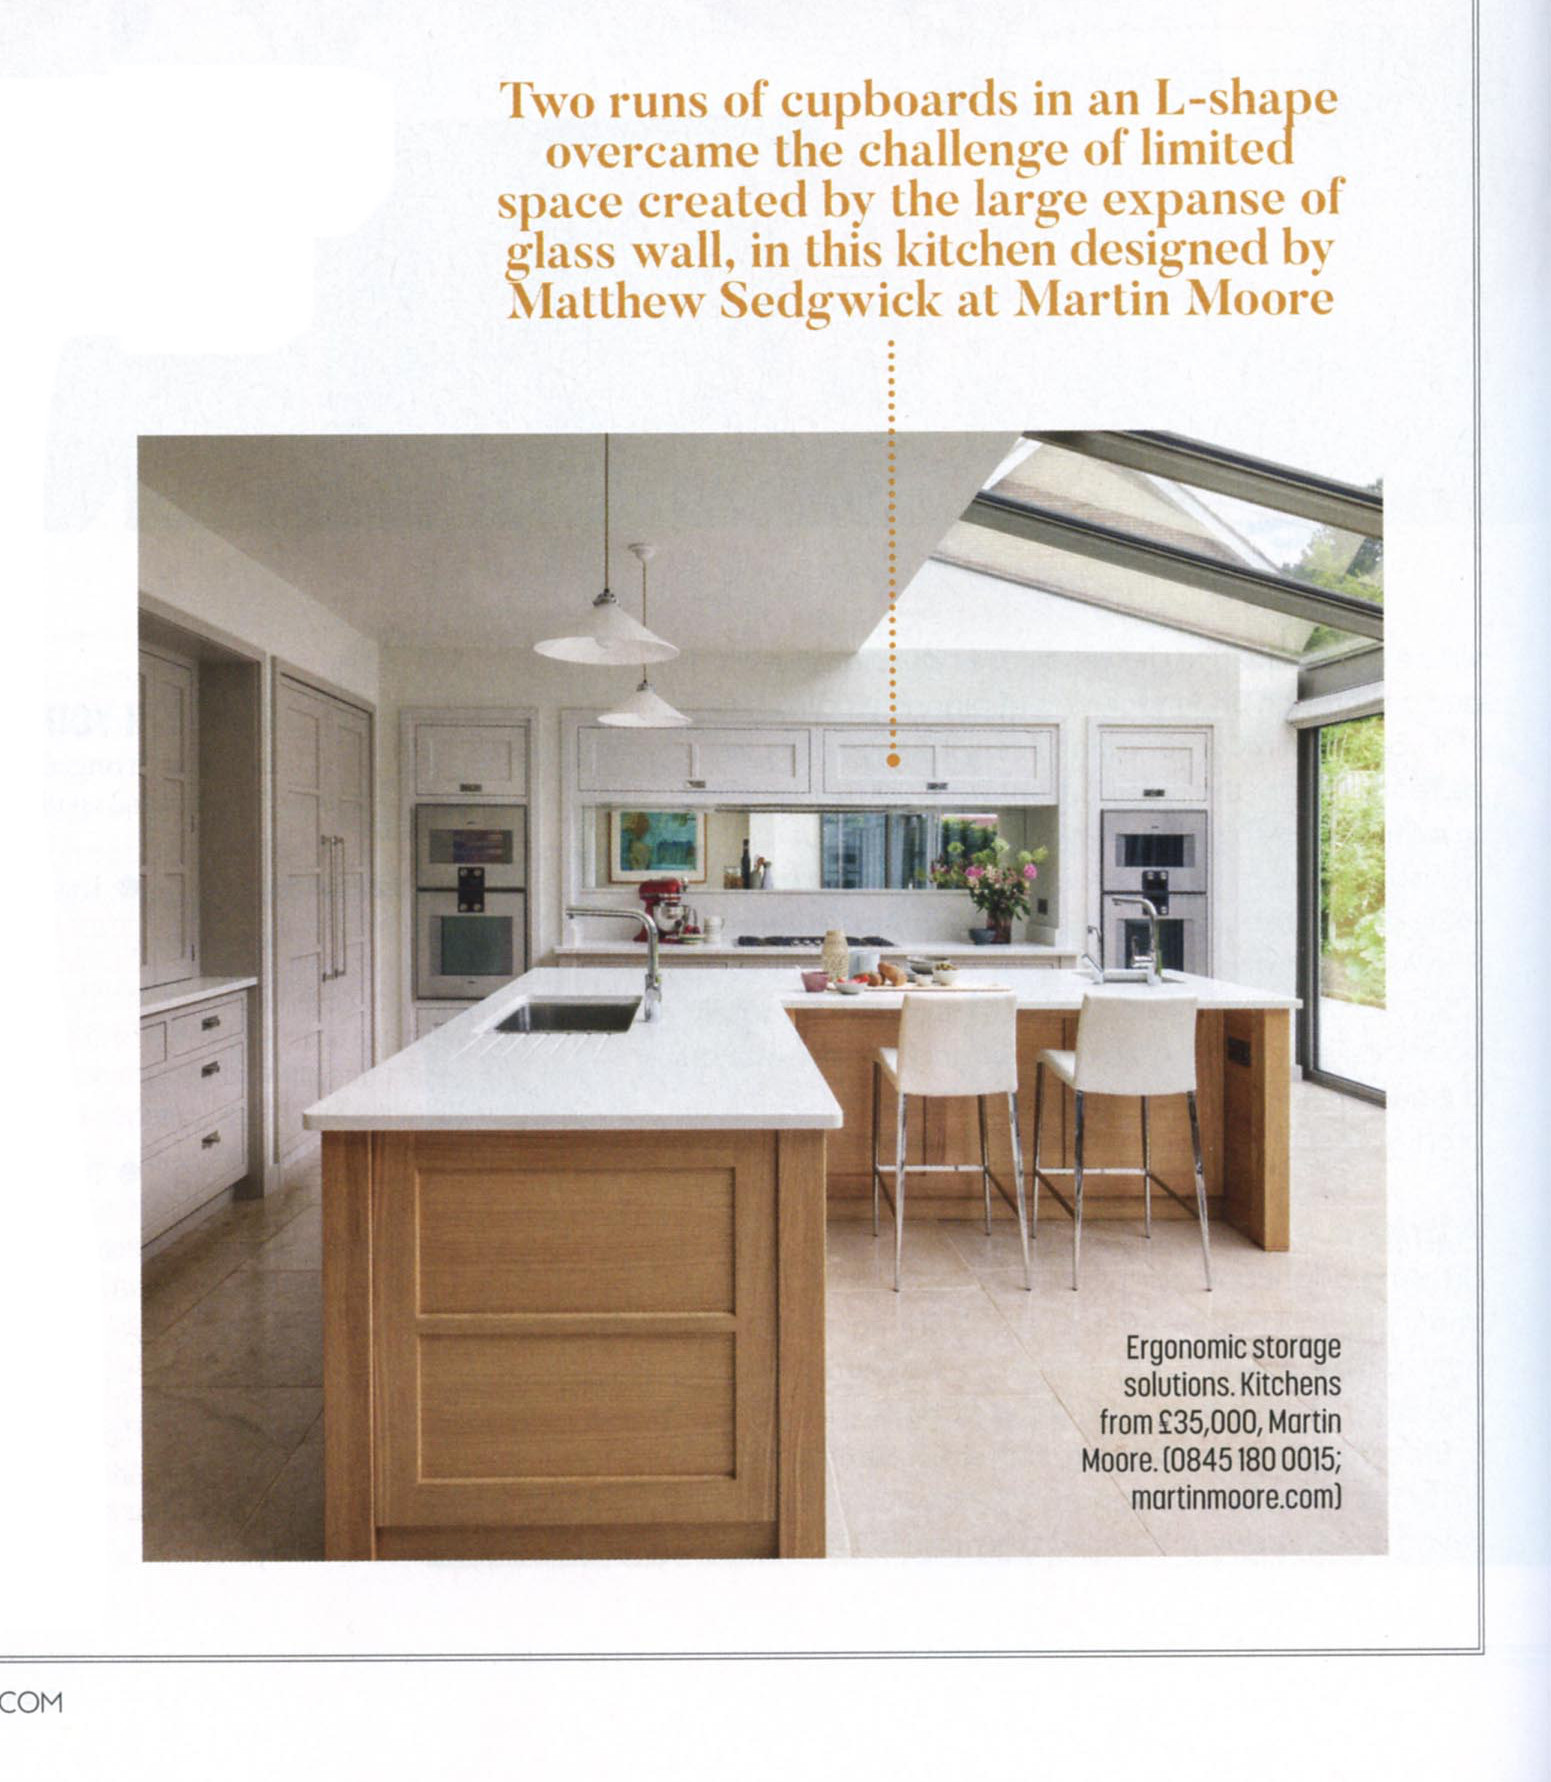 Grand Designs Kitchens: Keep Up To Date With News & Ideas For Kitchen Design